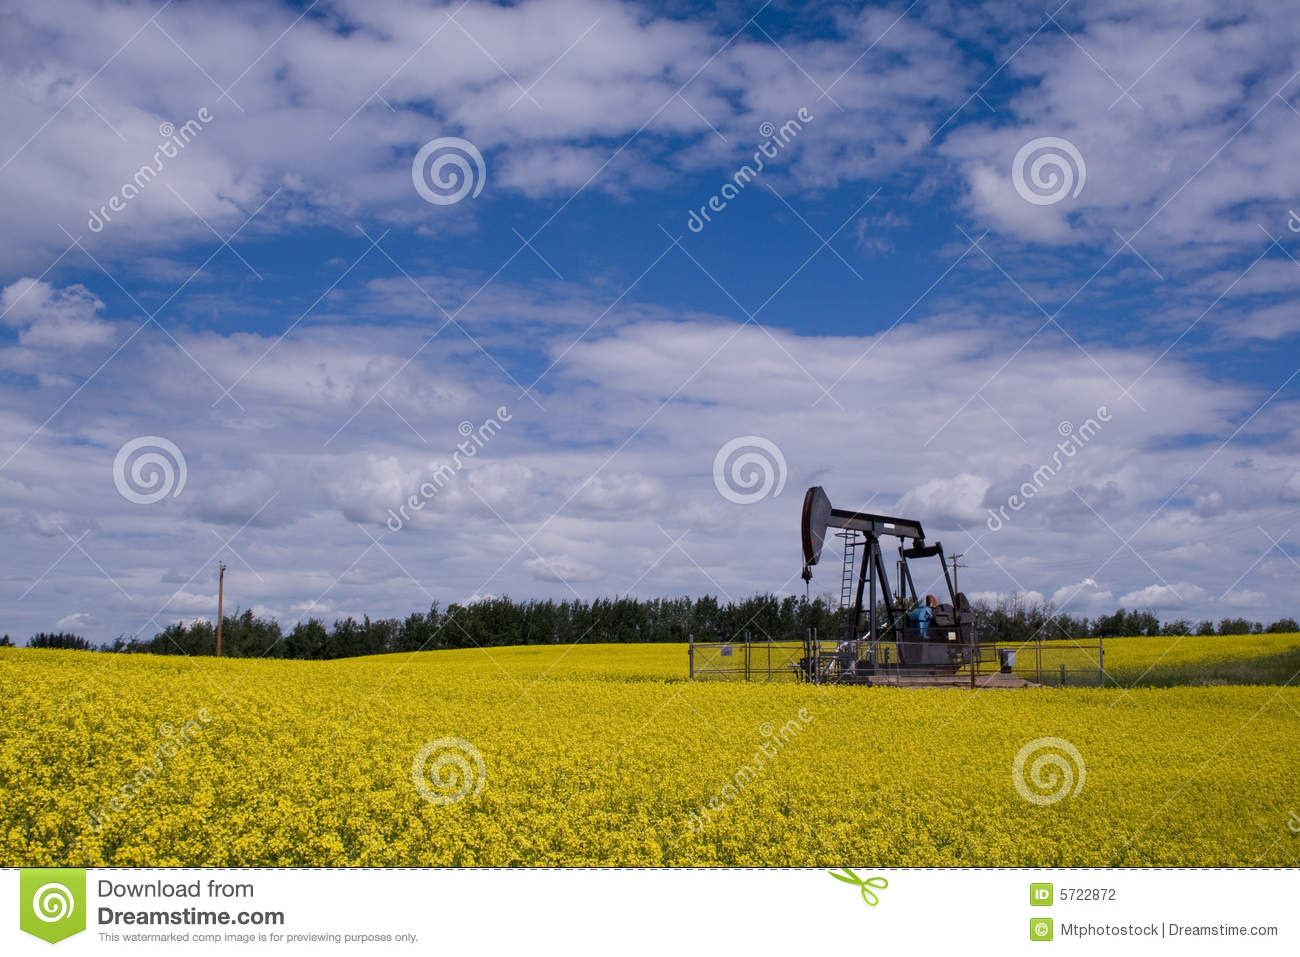 Oil well pump jack in yellow f